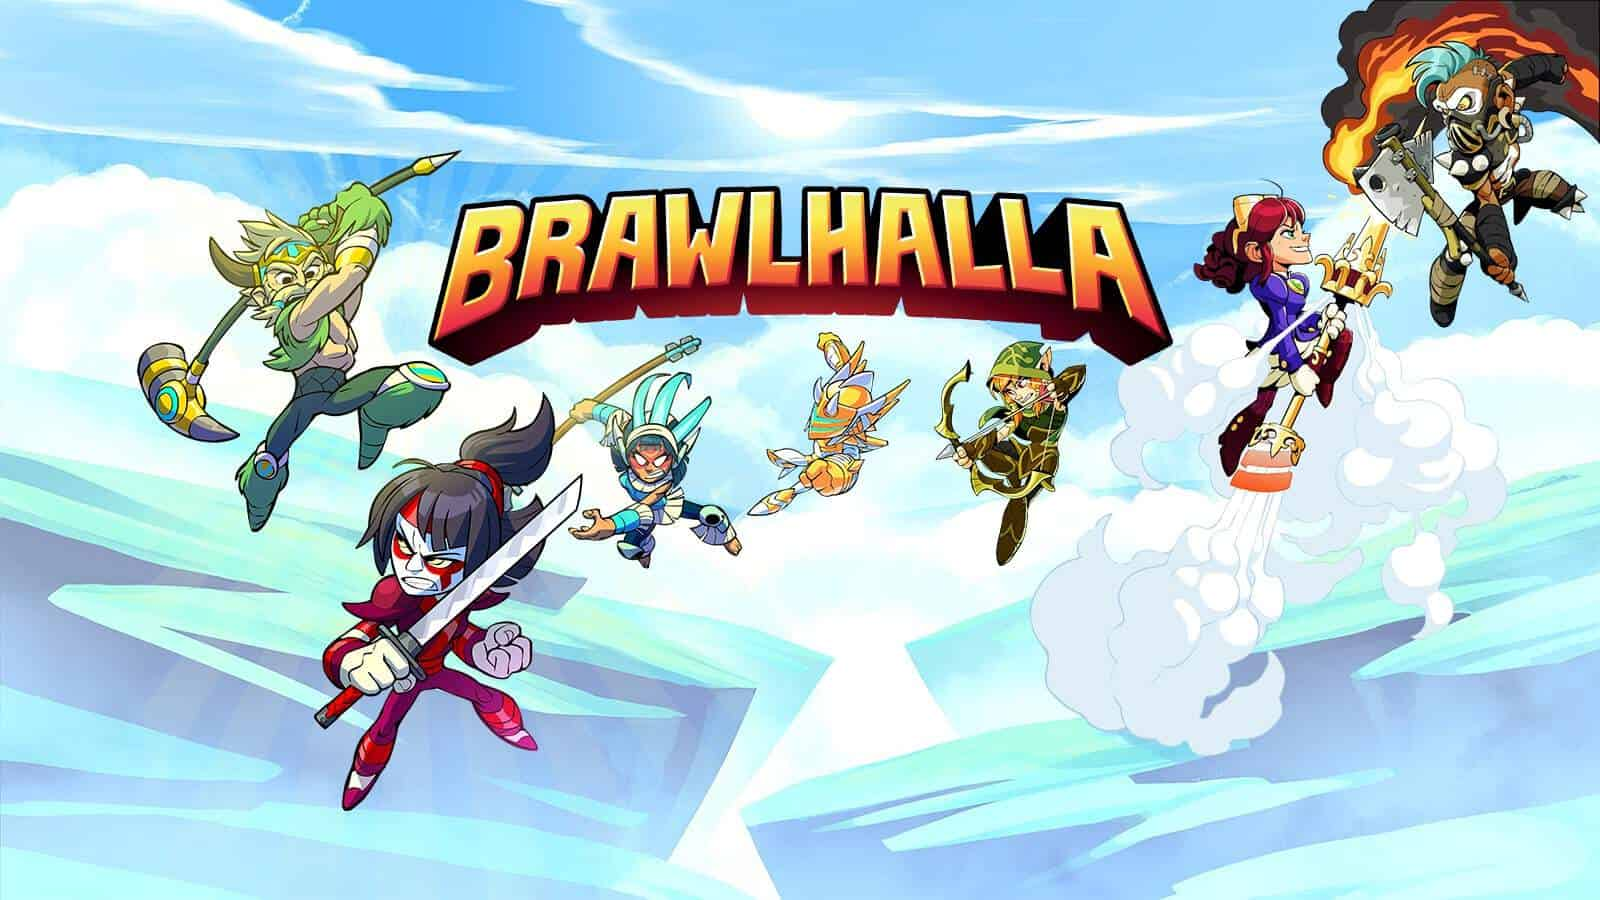 The Best Brawlhalla Stances For All Legends | GamerDiscovery